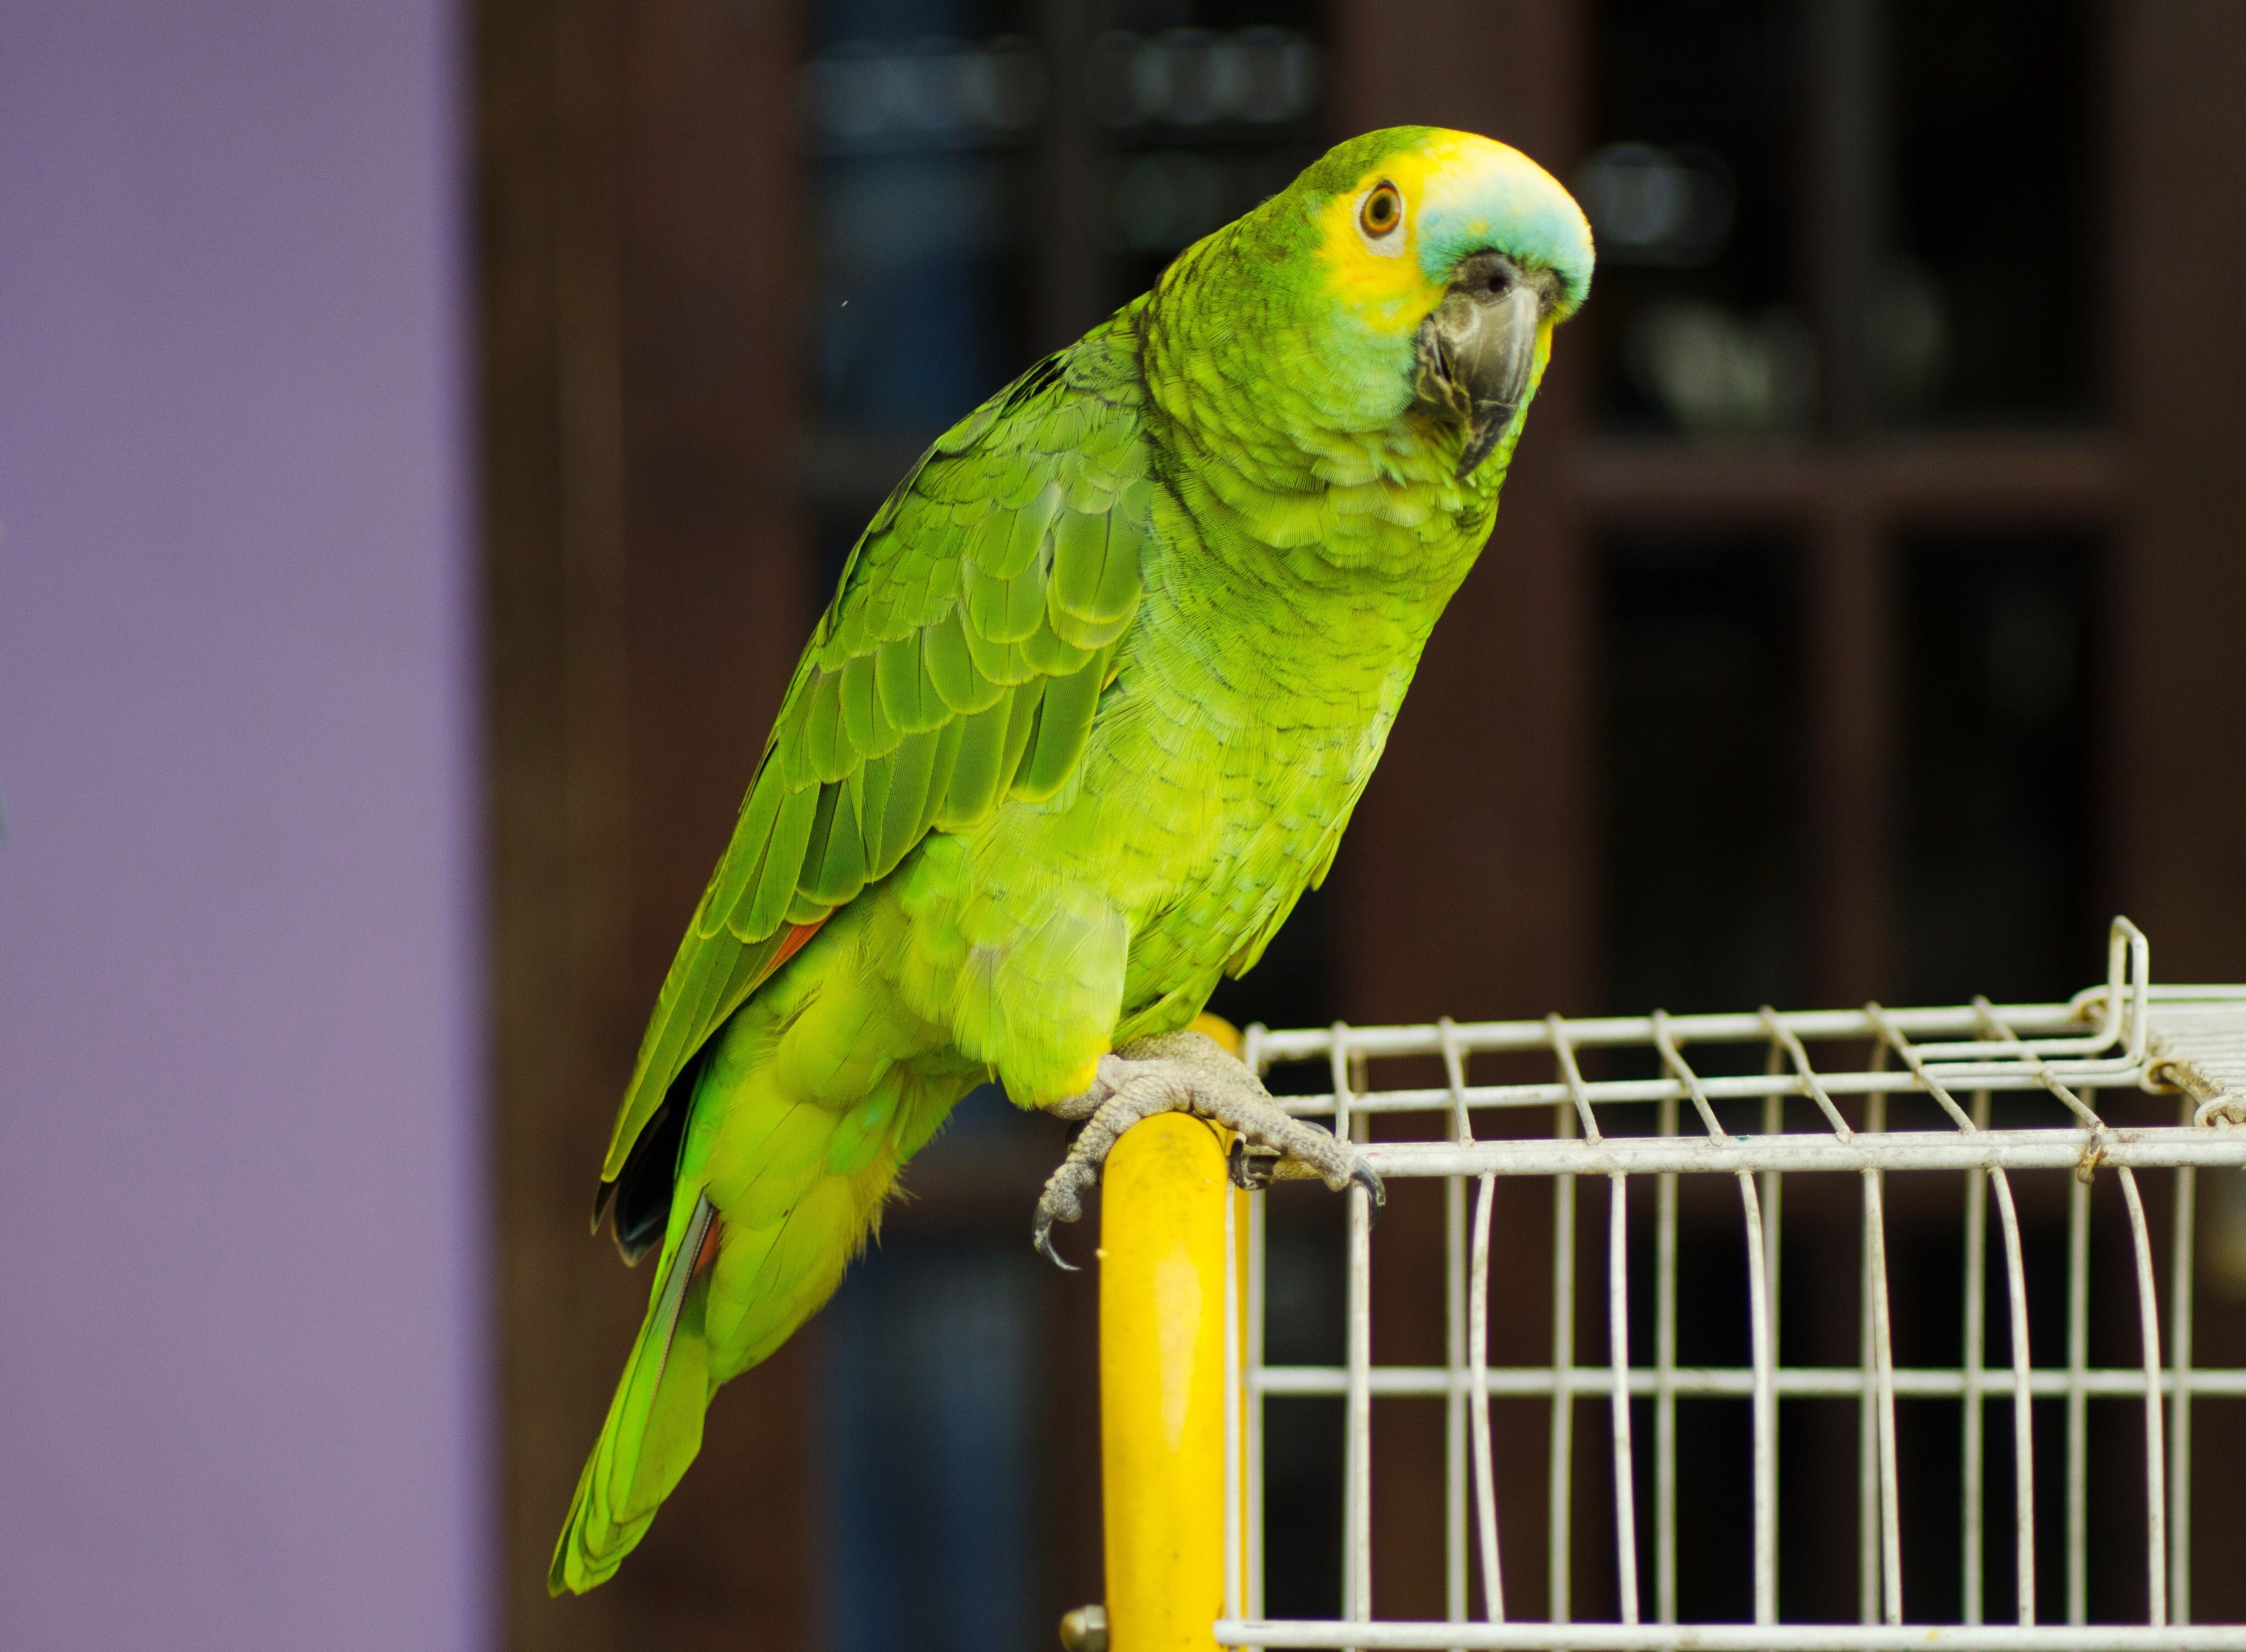 Green parrot perching on a cage.